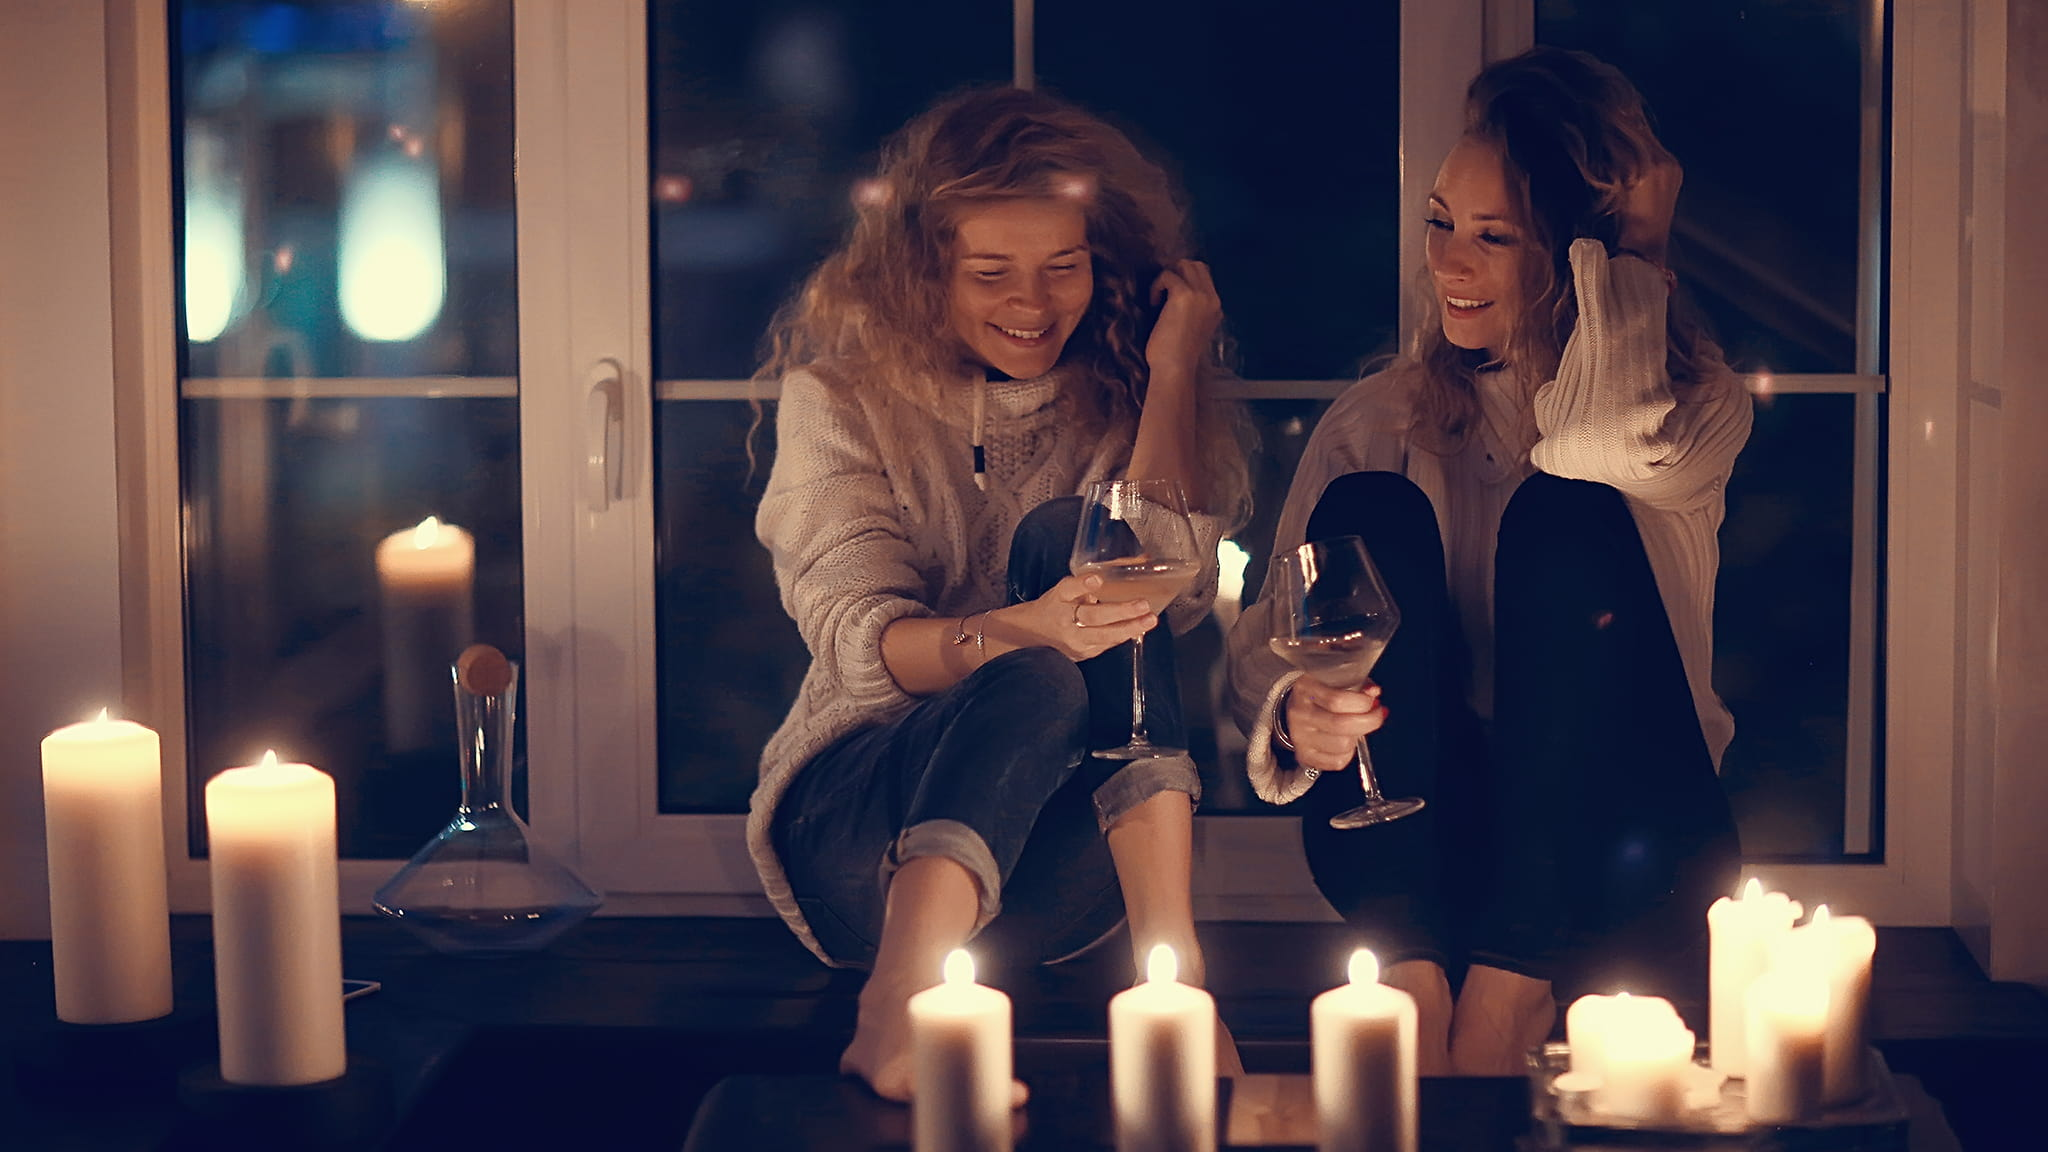 Two Women Smiling While Drinking Wine And Sitting Close Together In A Candlelit Room, Fun And Romance Concept